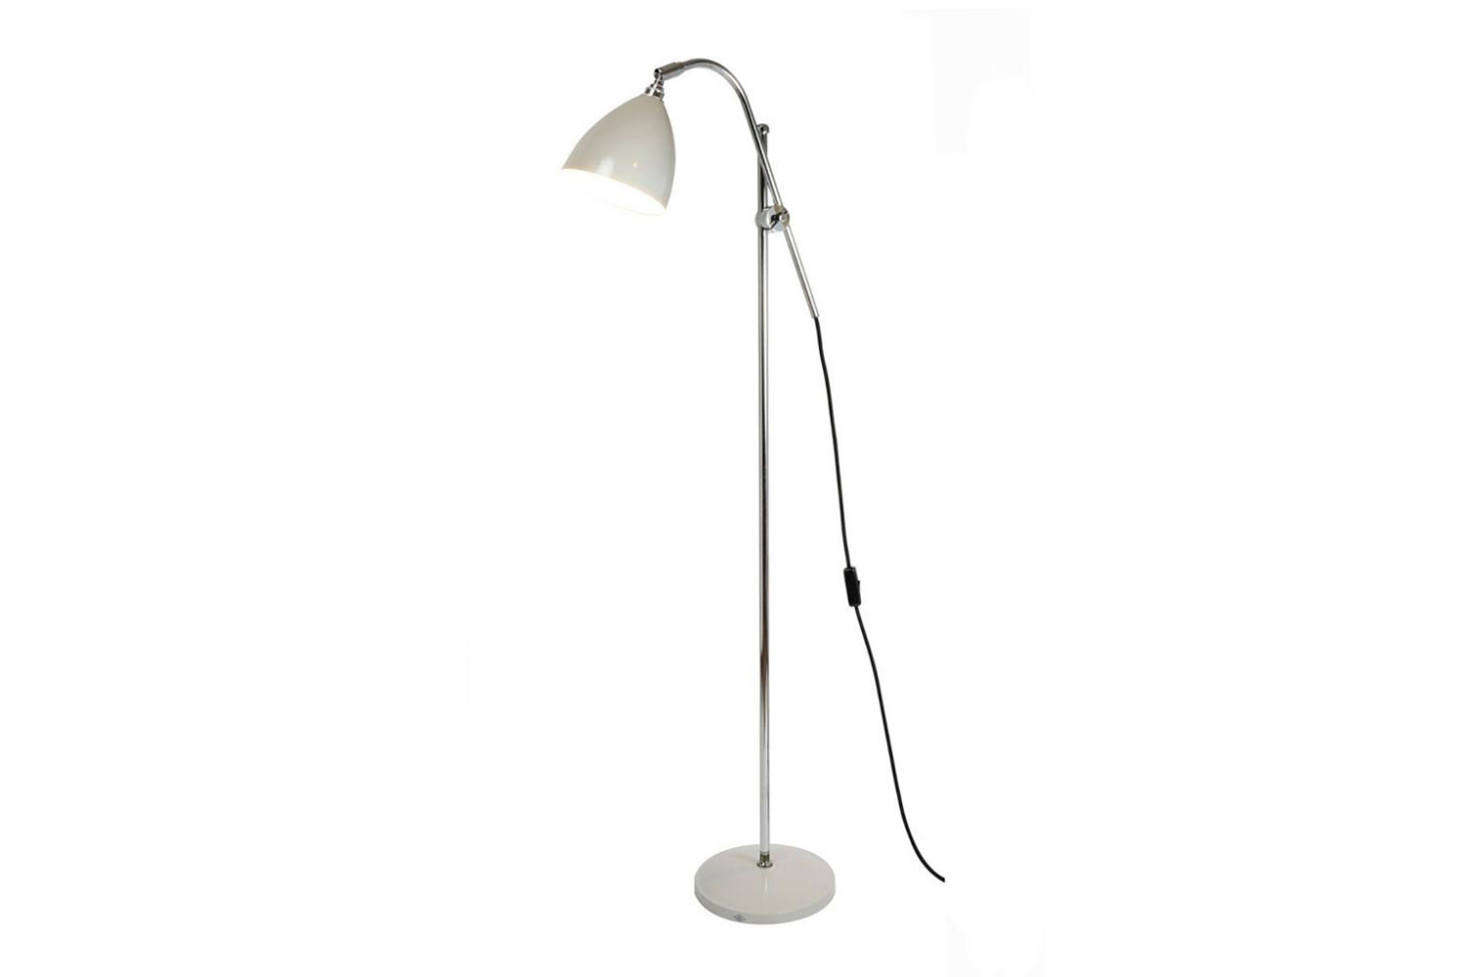 The Anglepoise Original 1227 Floor Lamp is the original version ofSir Kenneth Grange design above. It's made of aluminum and steel in the UK and comes in three colors; $375 at Horne.